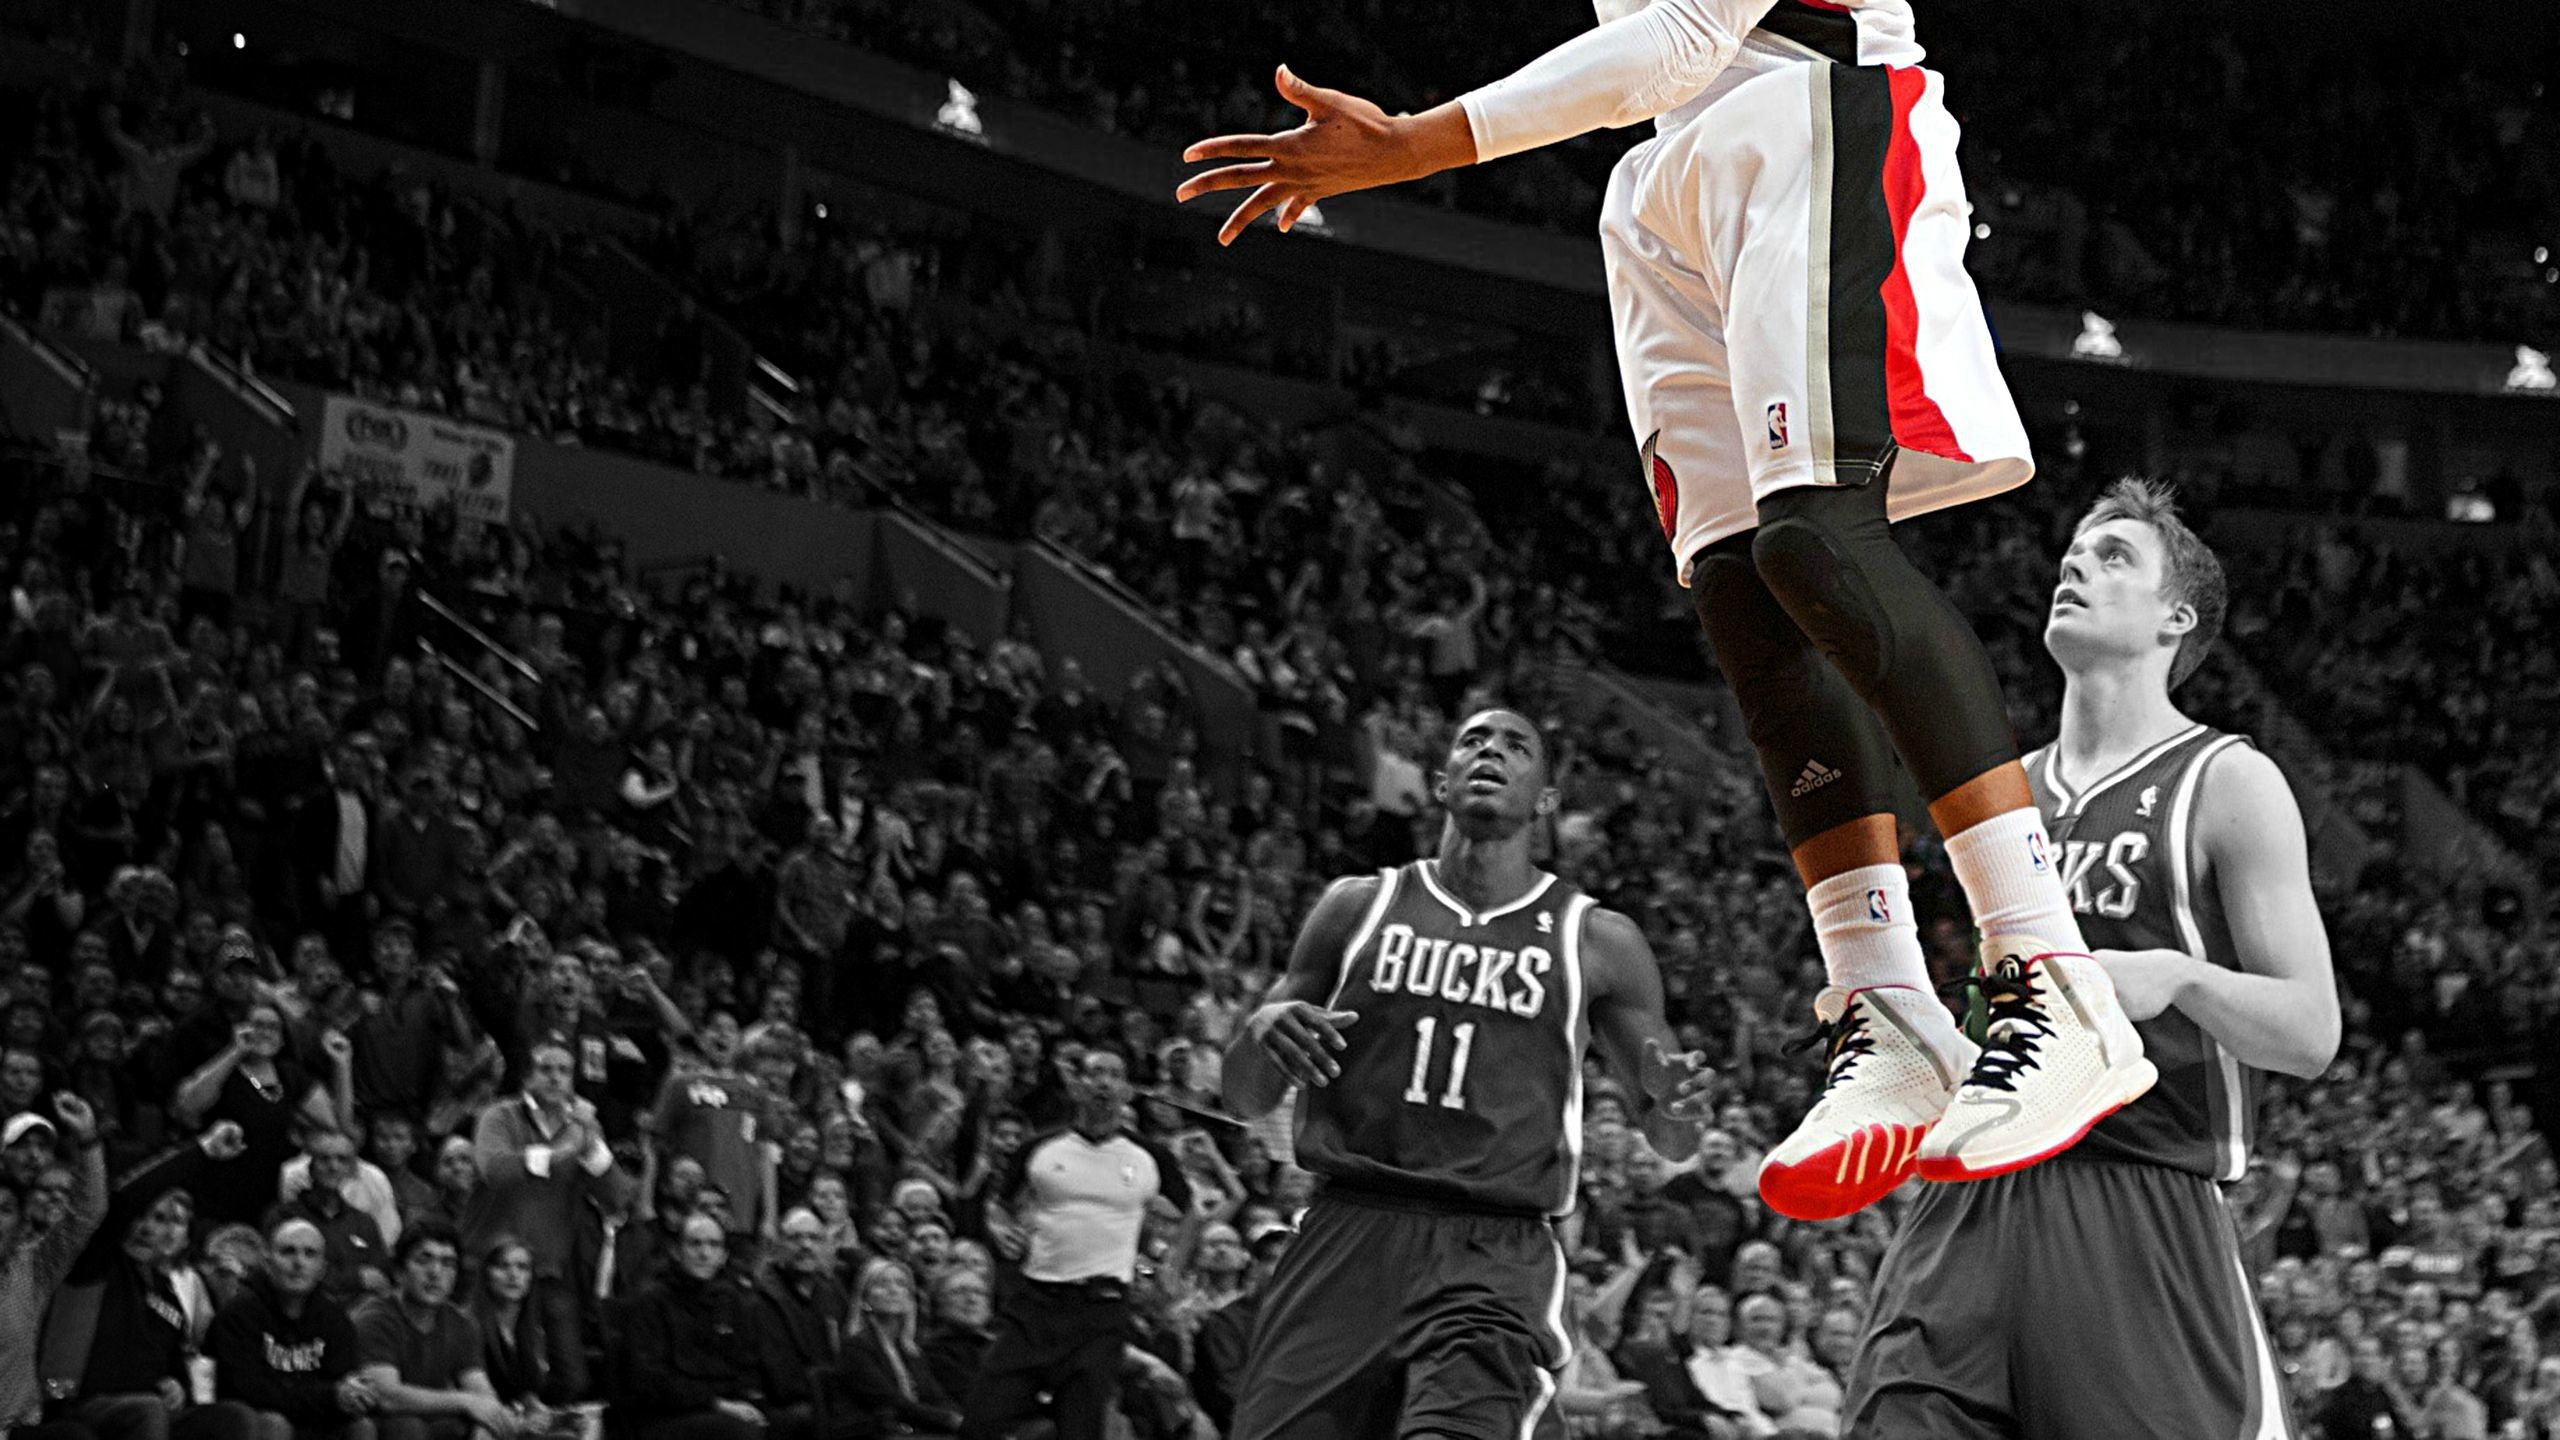 Res: 2560x1440, My coworker made a desktop background using his favorite Damian Lillard  photo.